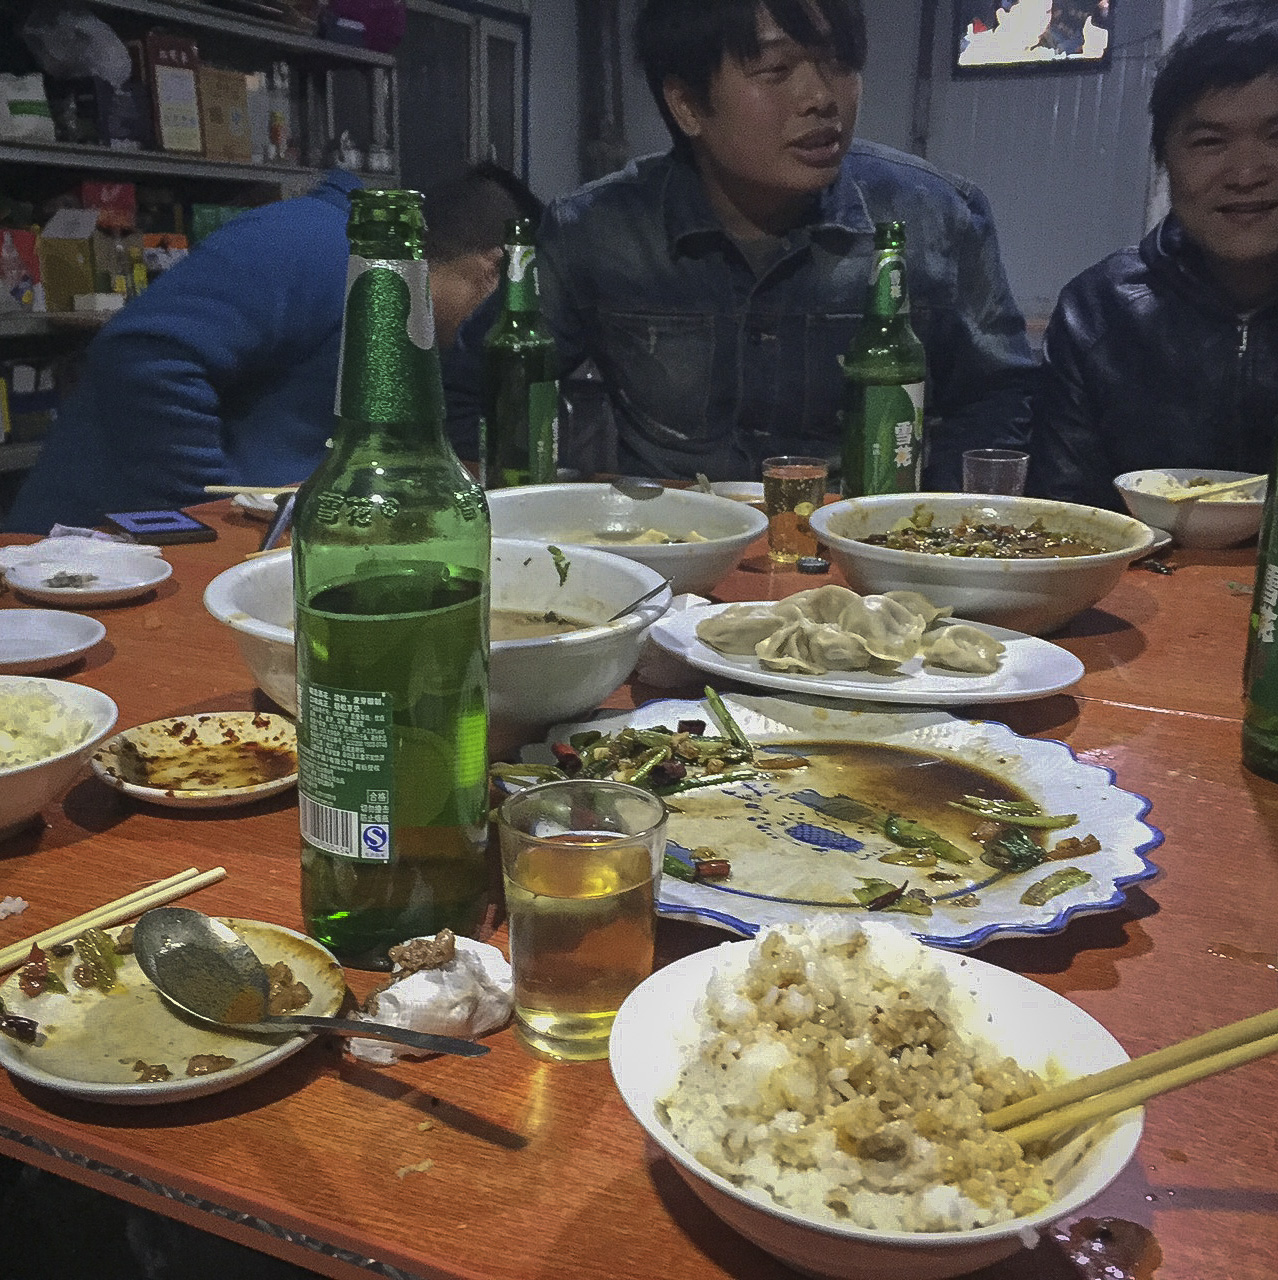 A Night of Grain Alcohol and Sichuan Noodles That Almost Never Happened At All